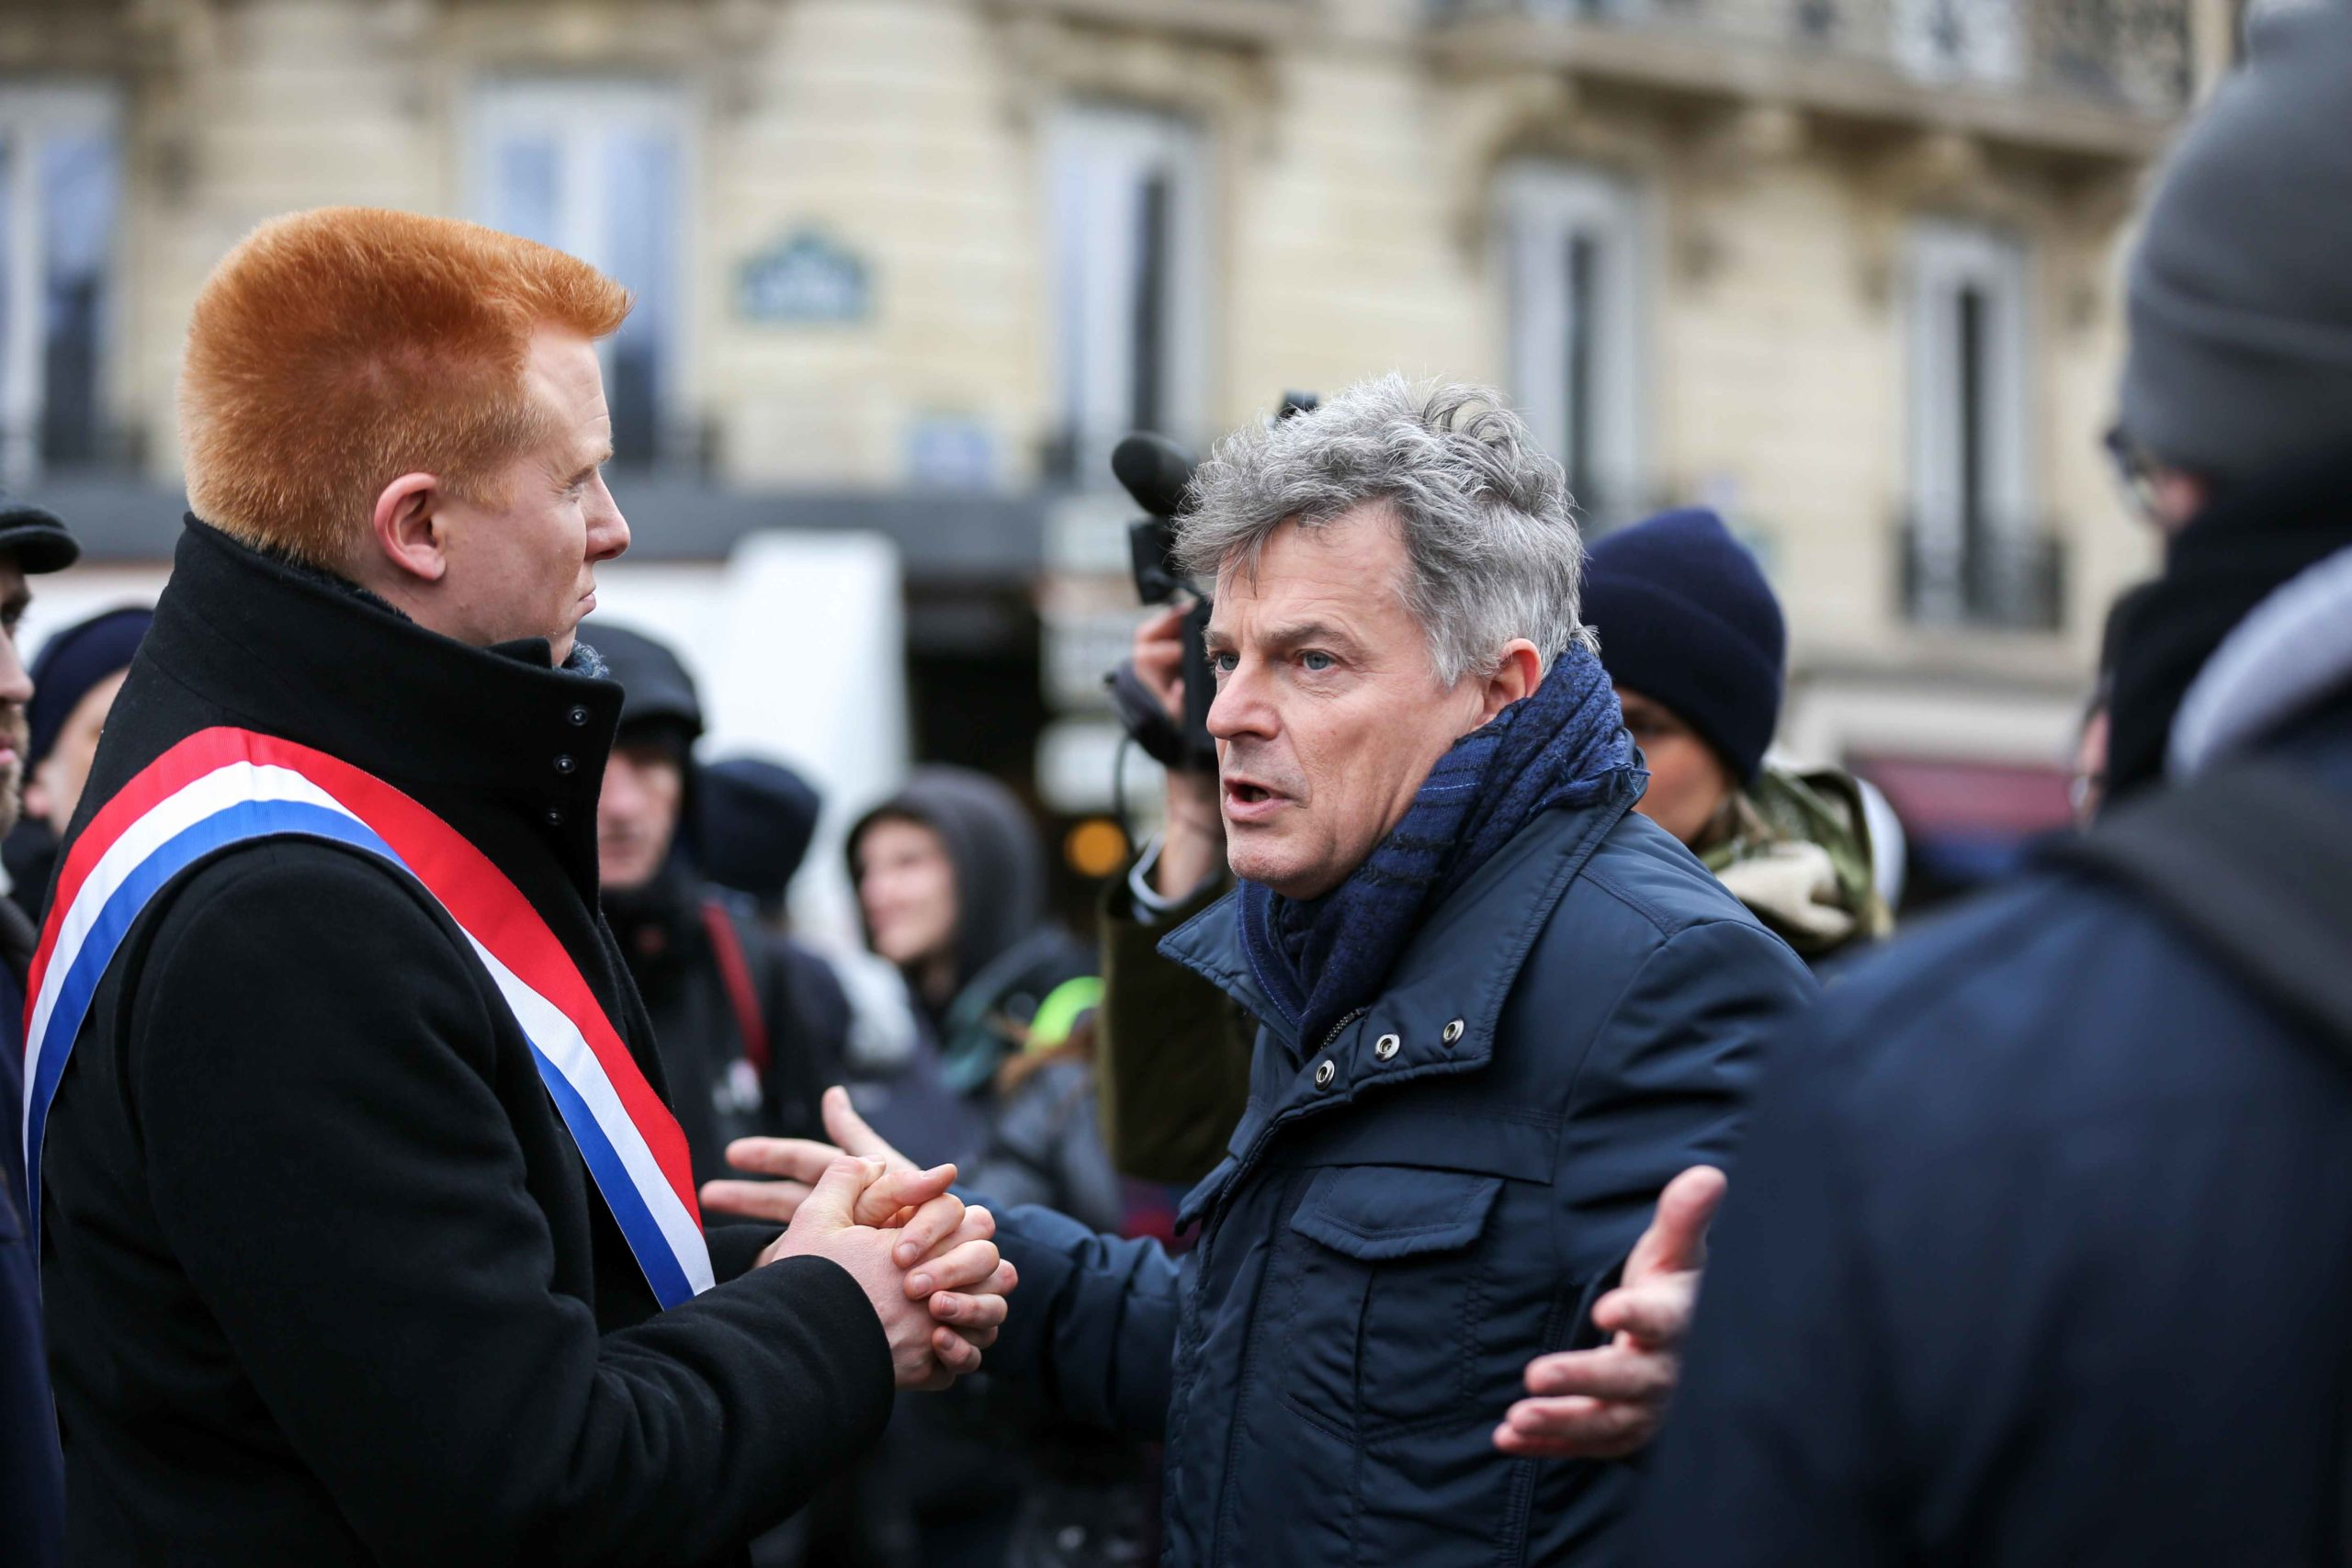 French leftist party La France Insoumise (LFI) MP Adrien Quatennens (L) speaks with Communist party member of Parliament Fabien Roussel (C) as they take part in a demonstration in front the Tour Eiffel in Paris on January 14, 2020, as part of a nationwide